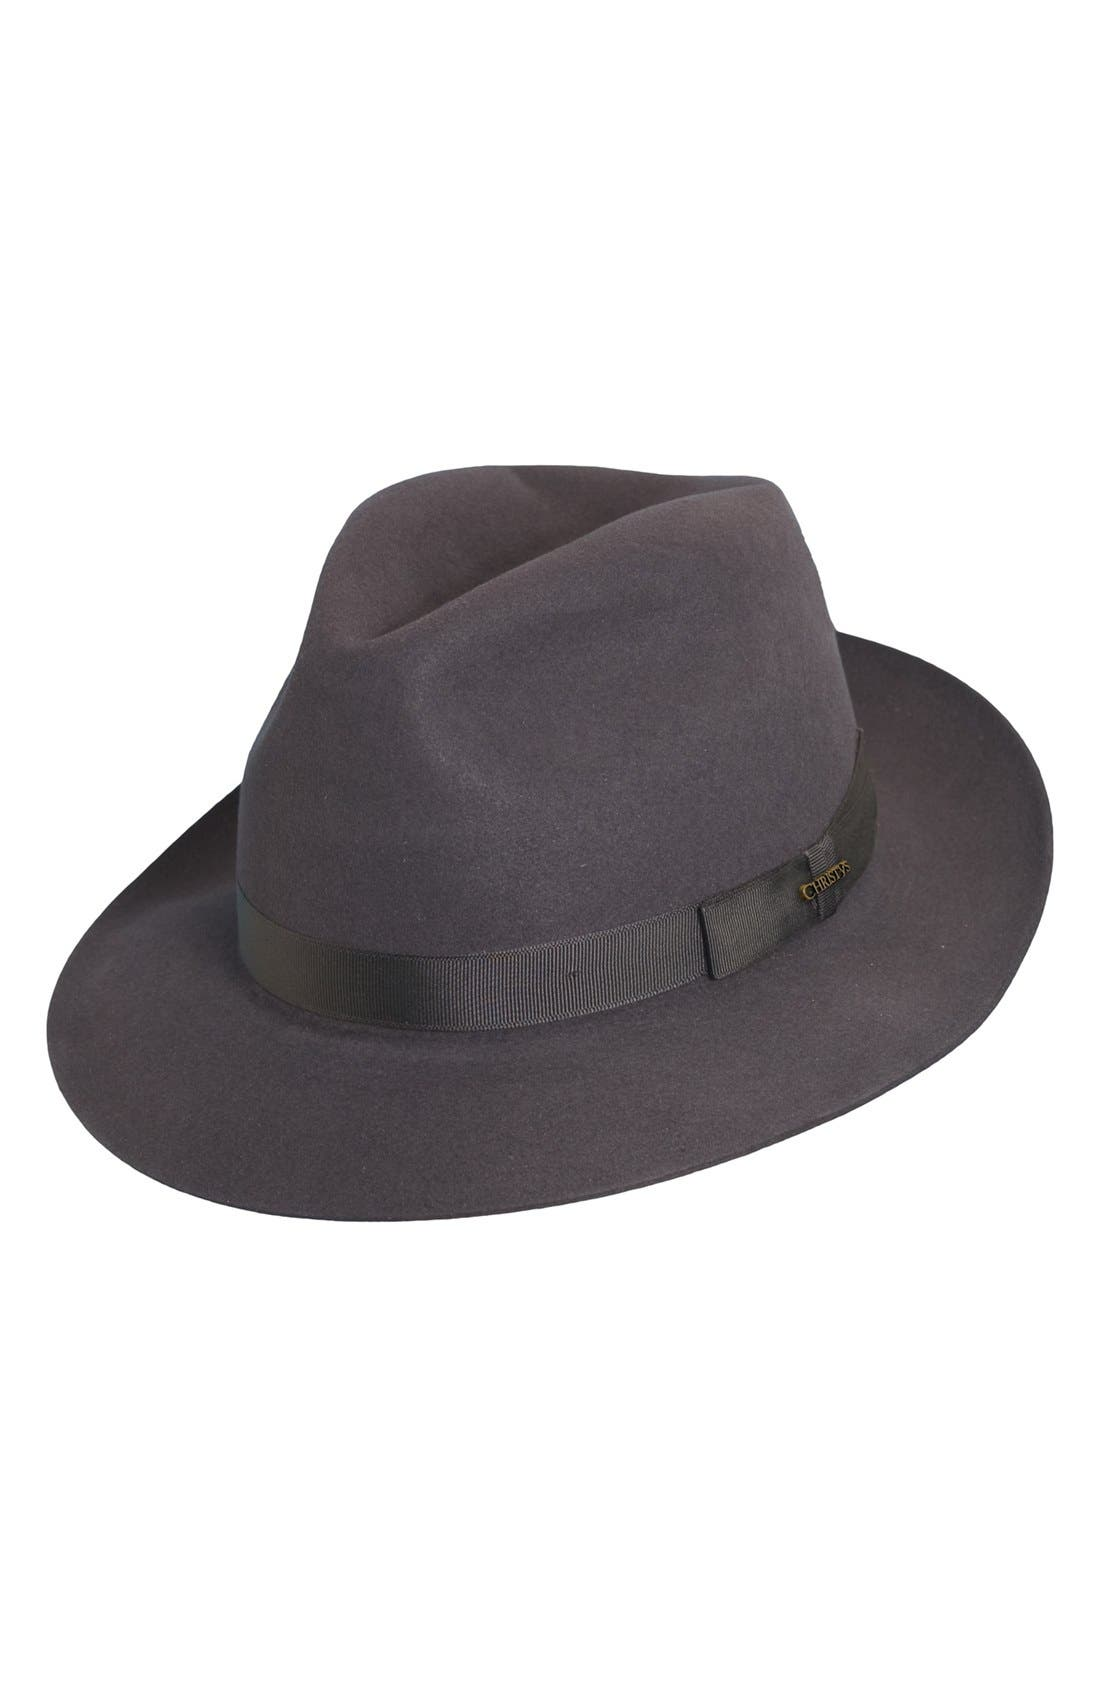 CHRISTYS HATS Christys Fur Felt Trilby